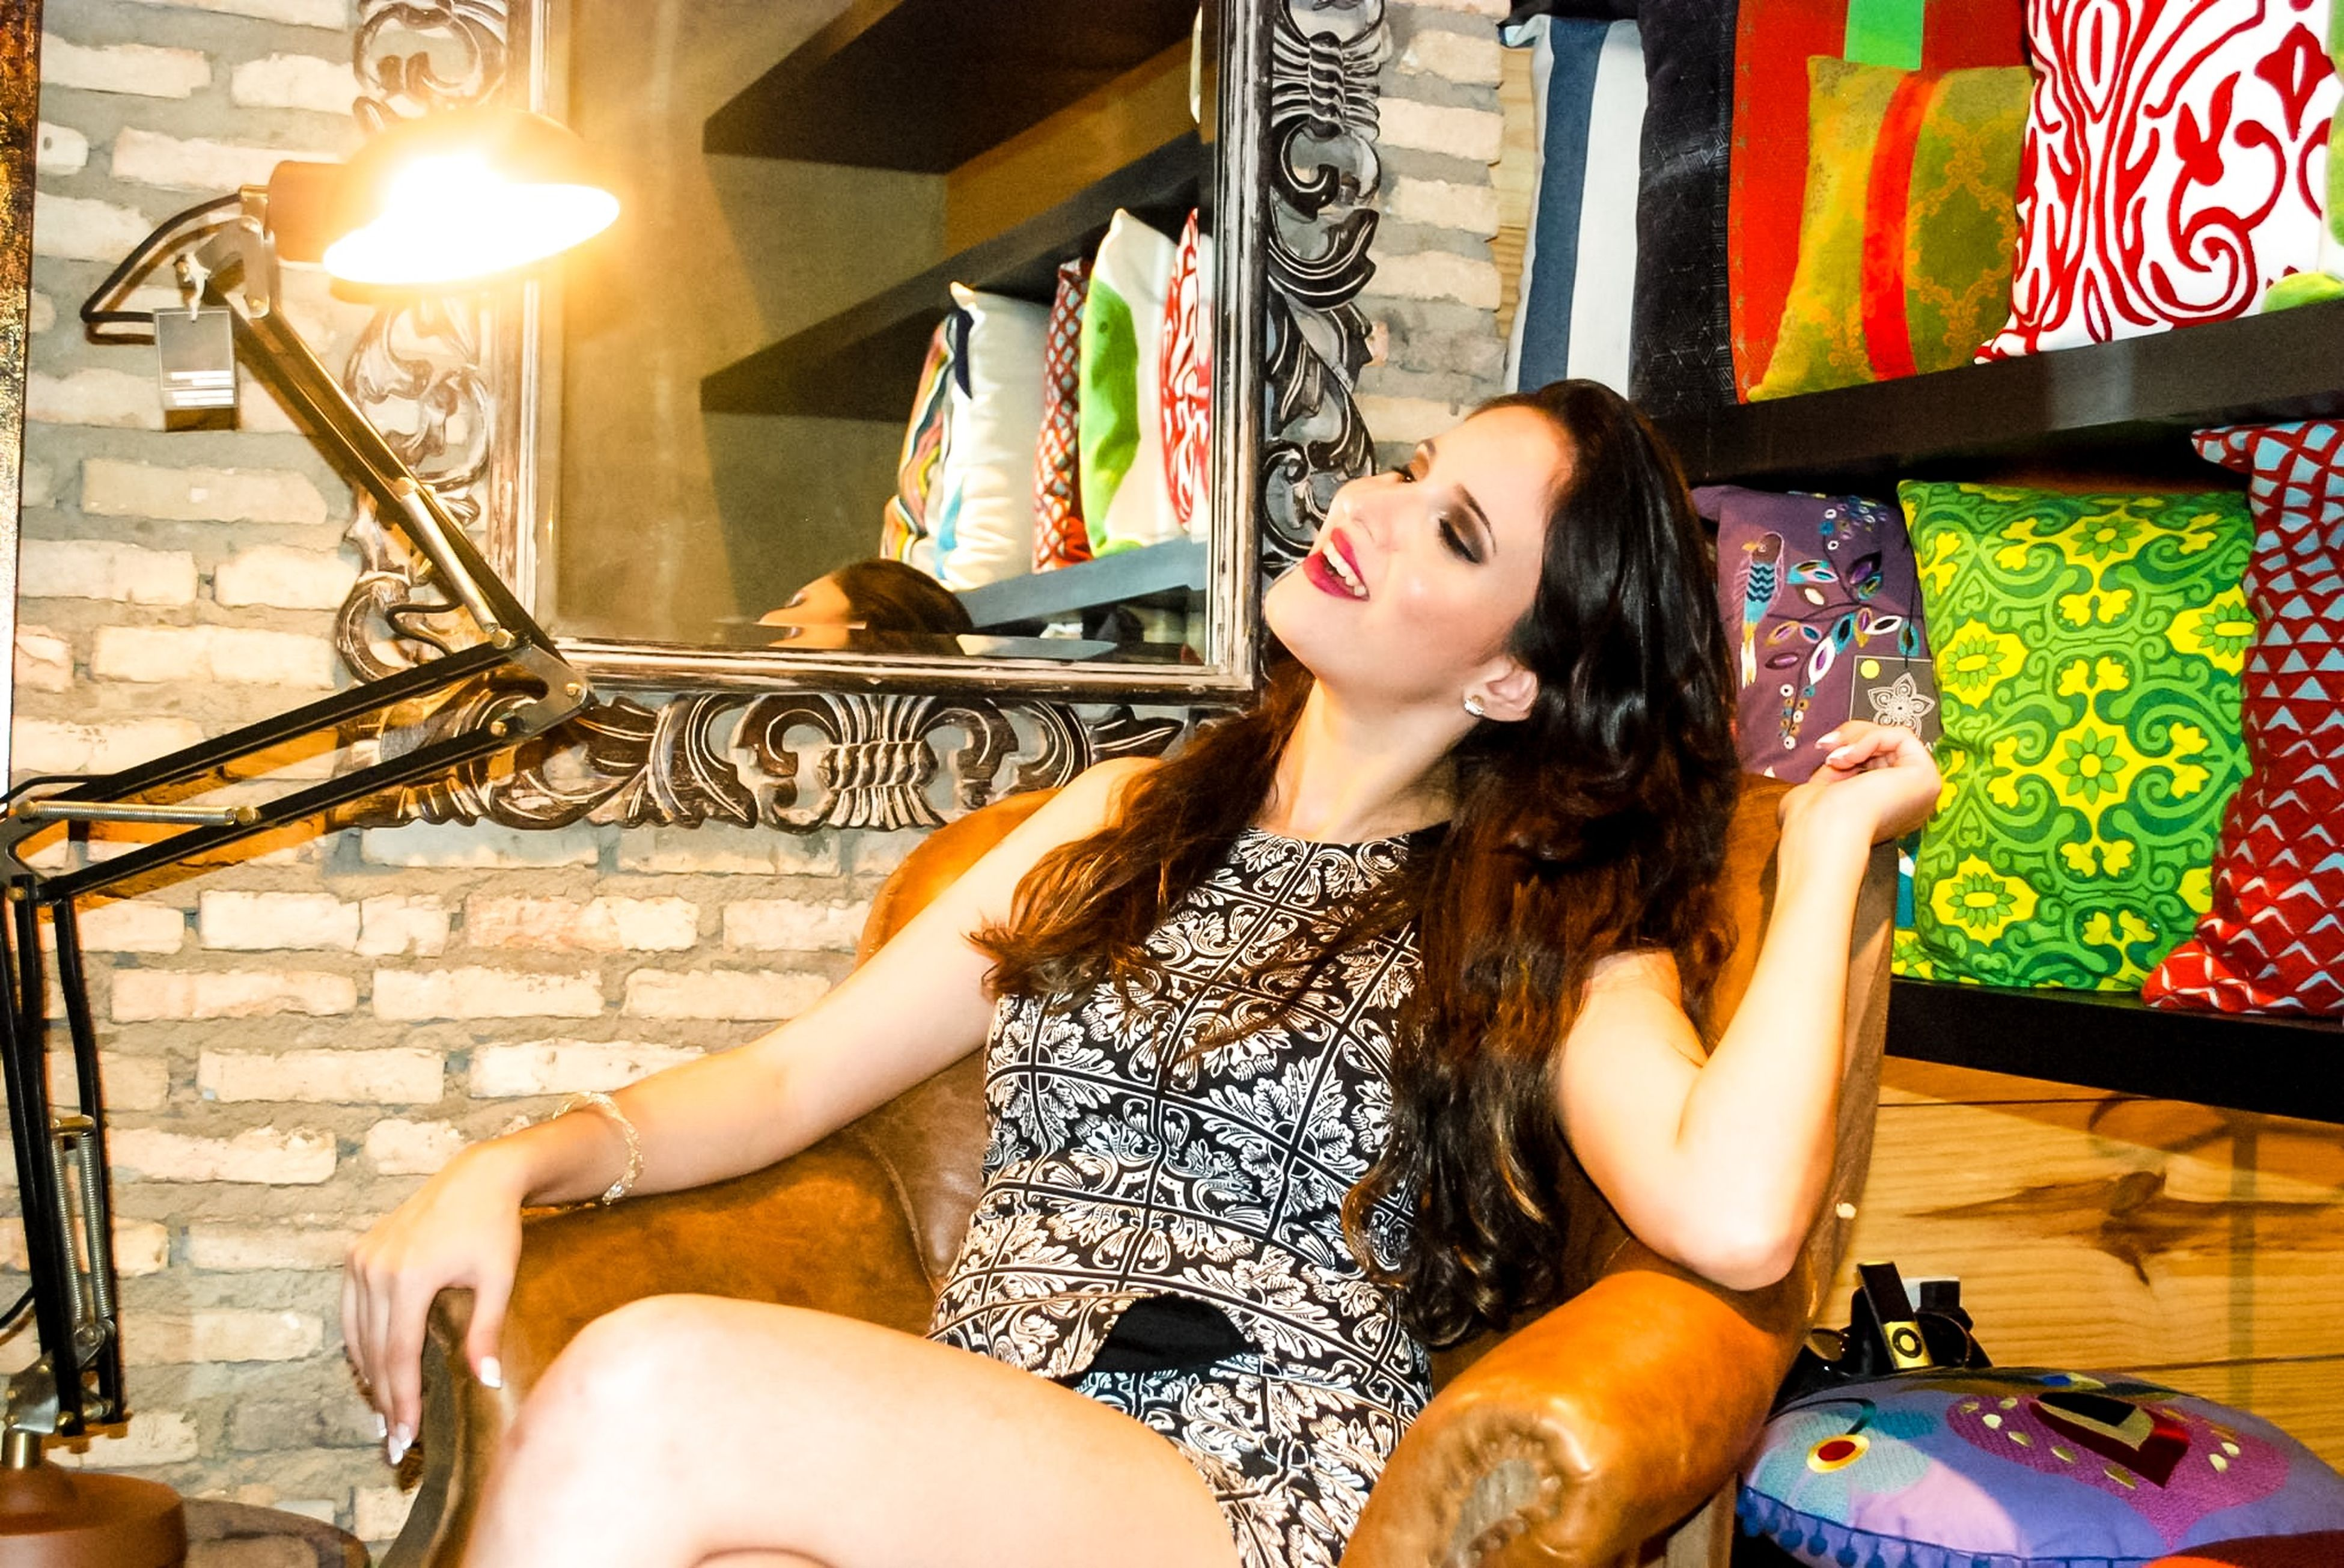 indoors, lifestyles, person, casual clothing, young adult, leisure activity, young women, sitting, three quarter length, illuminated, retail, front view, looking at camera, smiling, waist up, happiness